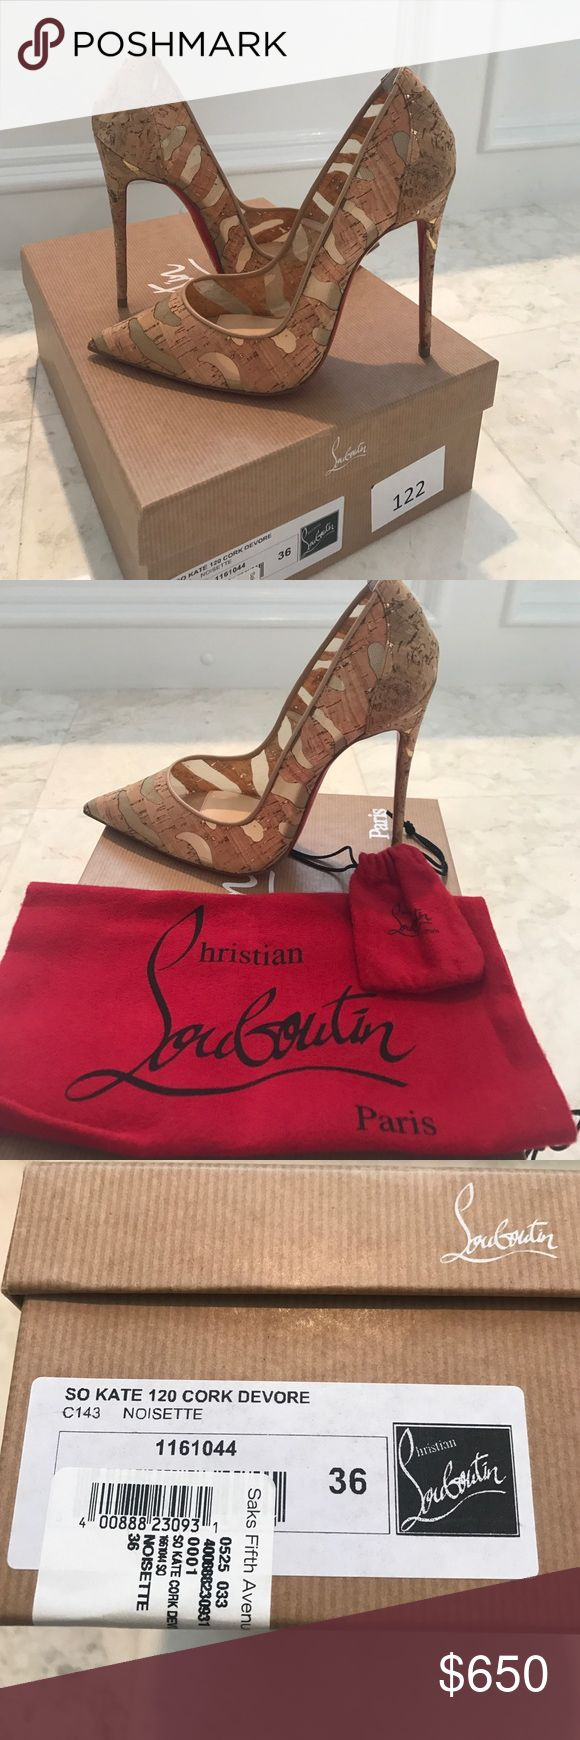 Christian Louboutin So Kate 120 Cork Devore Brand new in box with dust bag and extra heel taps. Cork and mesh. Beautiful neutral shoes! Christian Louboutin Shoes Heels